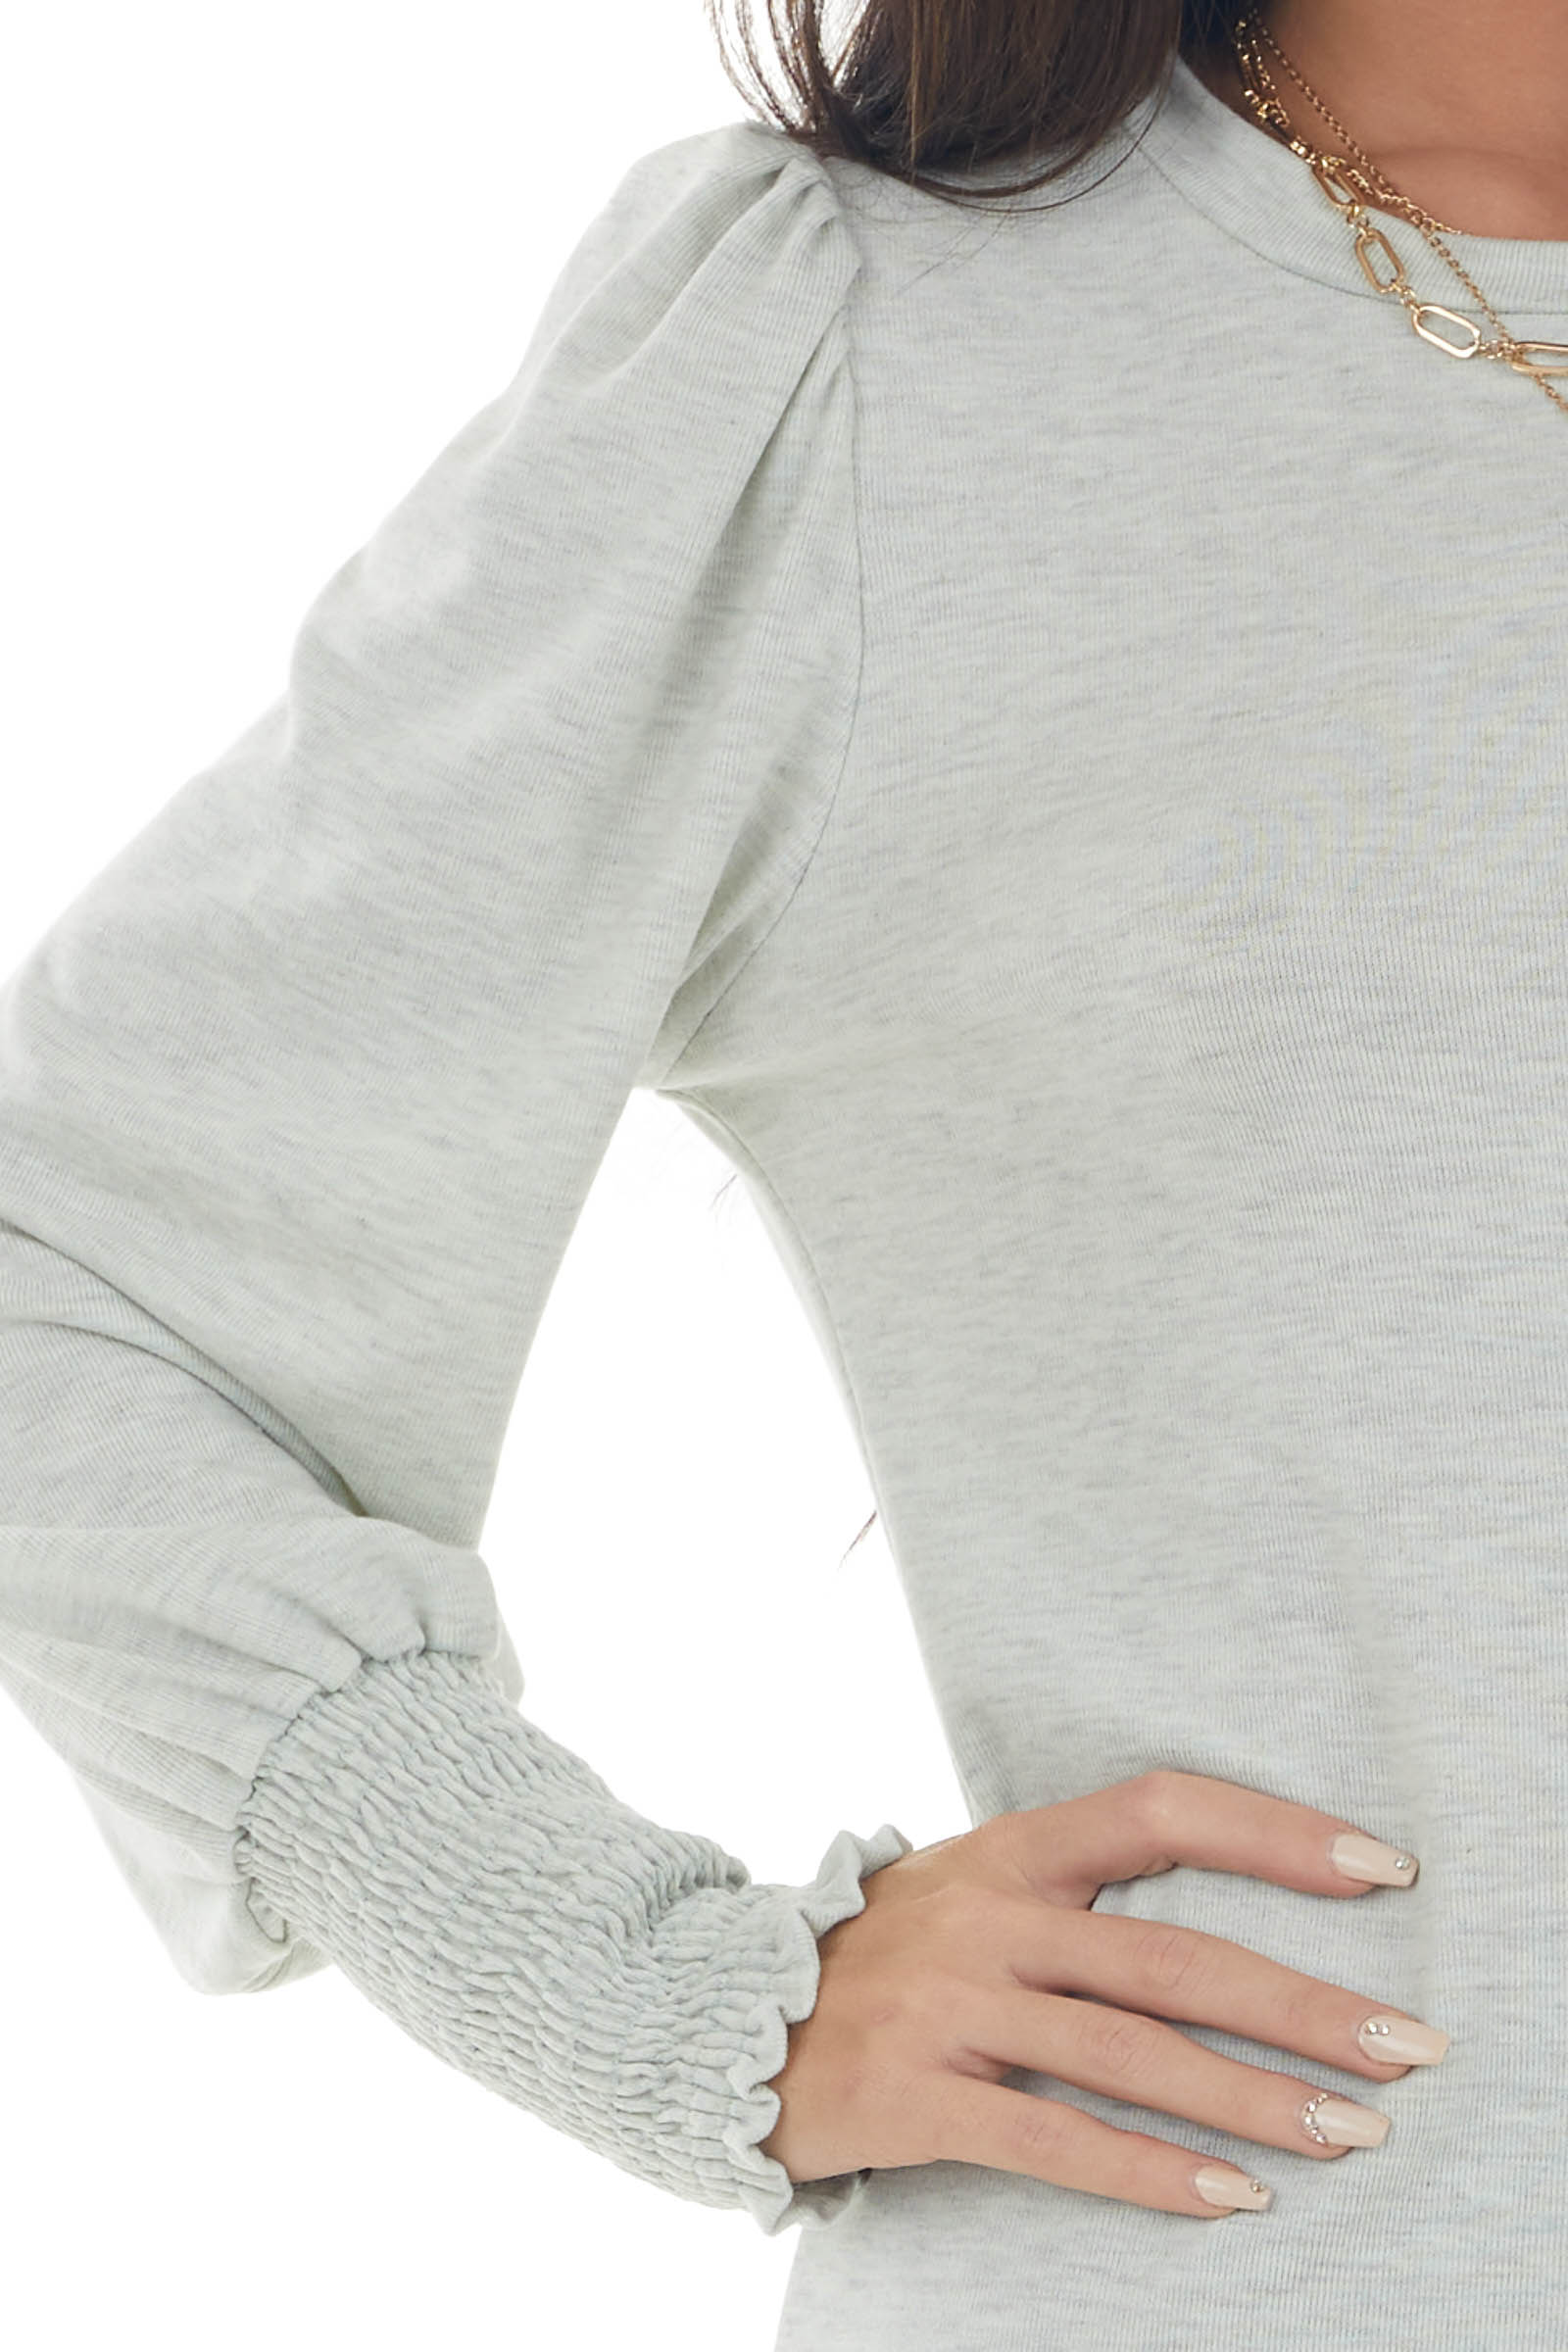 Dove Grey Long Sleeve Smocked Cuff Knit Top